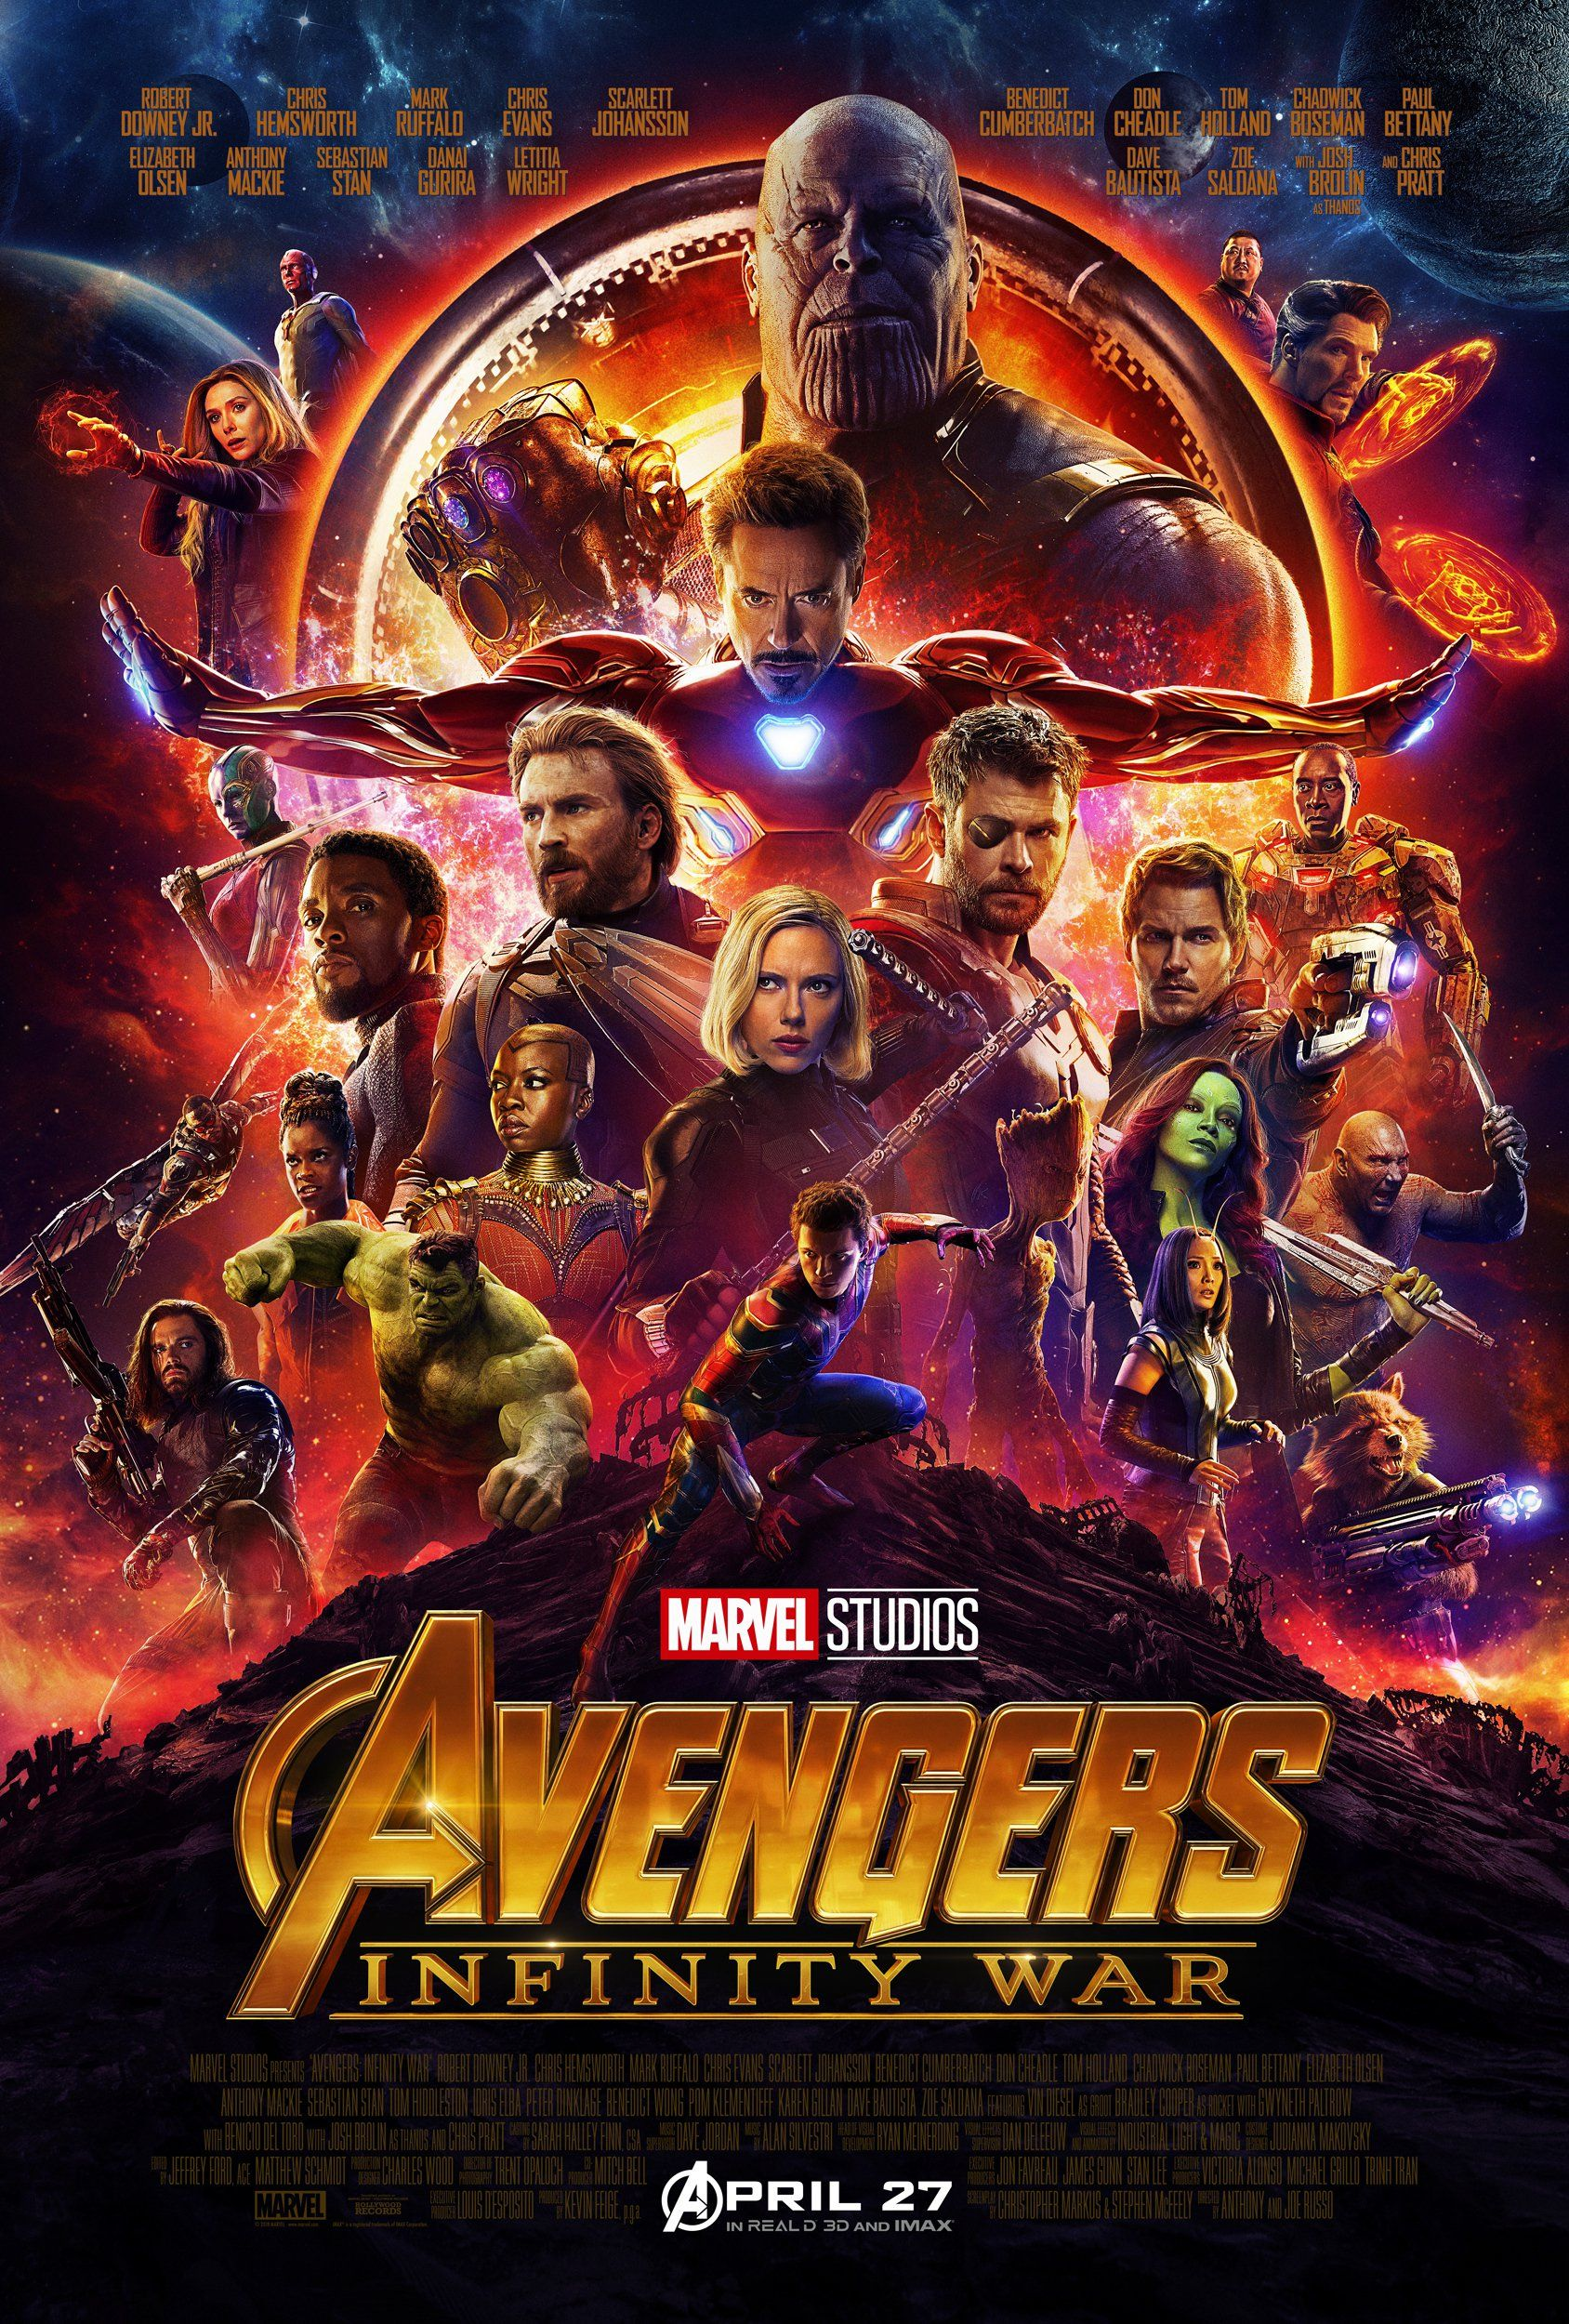 Final Avengers Infinity War Poster Pays Off In A Big Way S